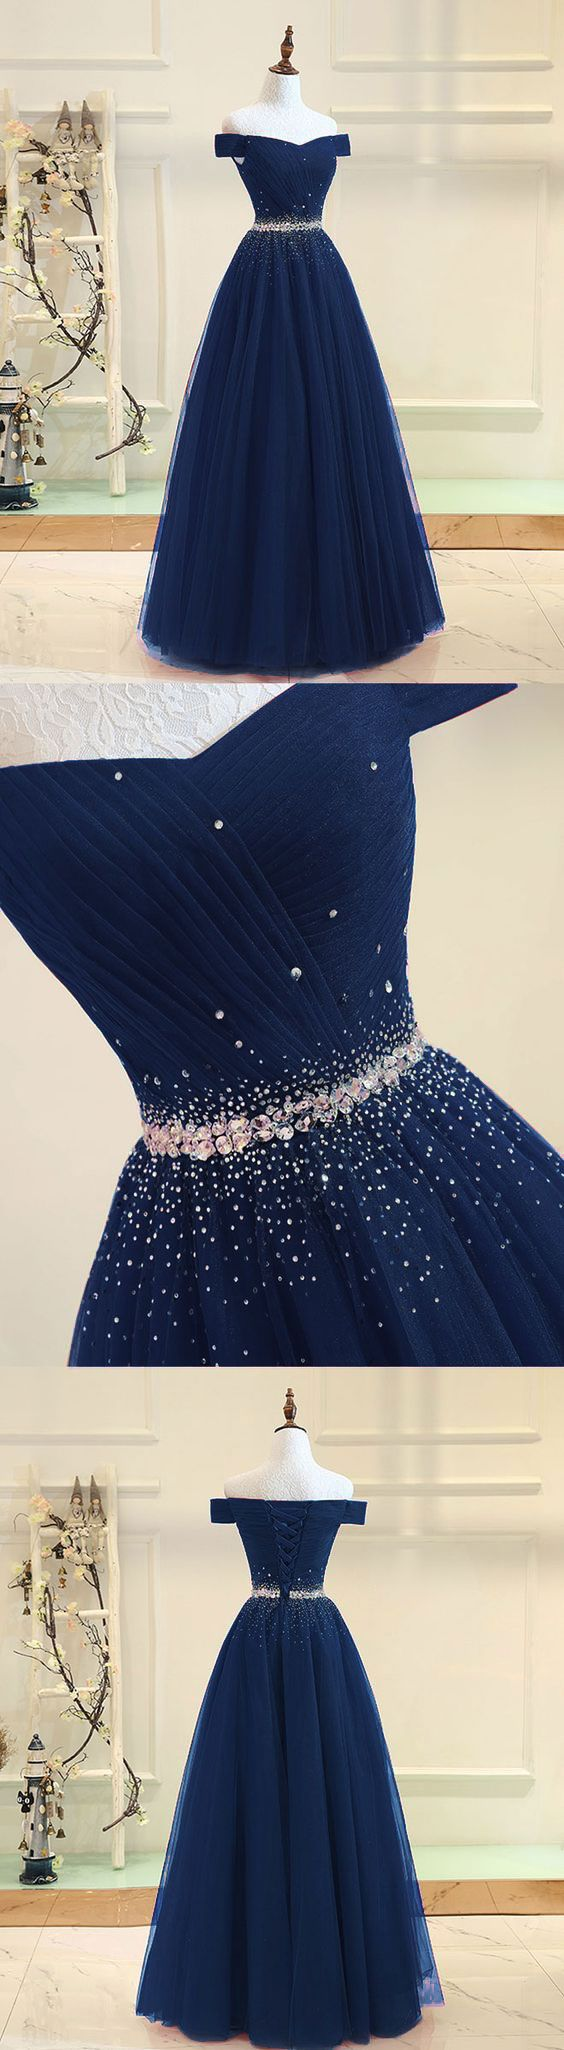 Dark blue tulle long prom dress, dark blue tulle evening dress, blue bridesmaid dress